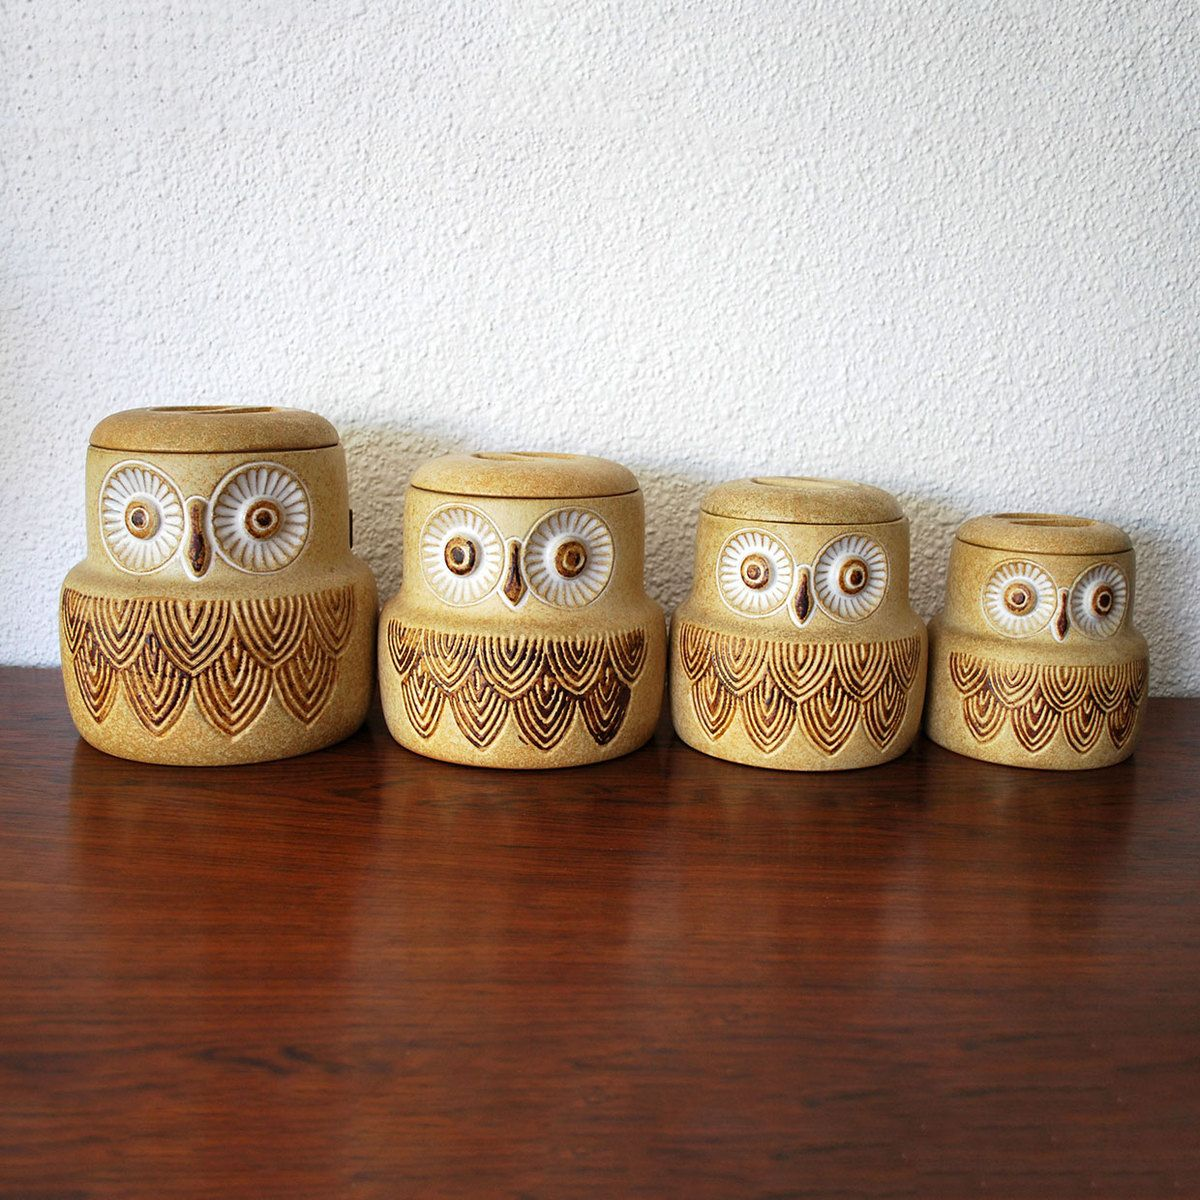 Owl Canisters For The Kitchen | Vintage Owl Canisters Set Of 4 Pottery Craft These Are Awesome